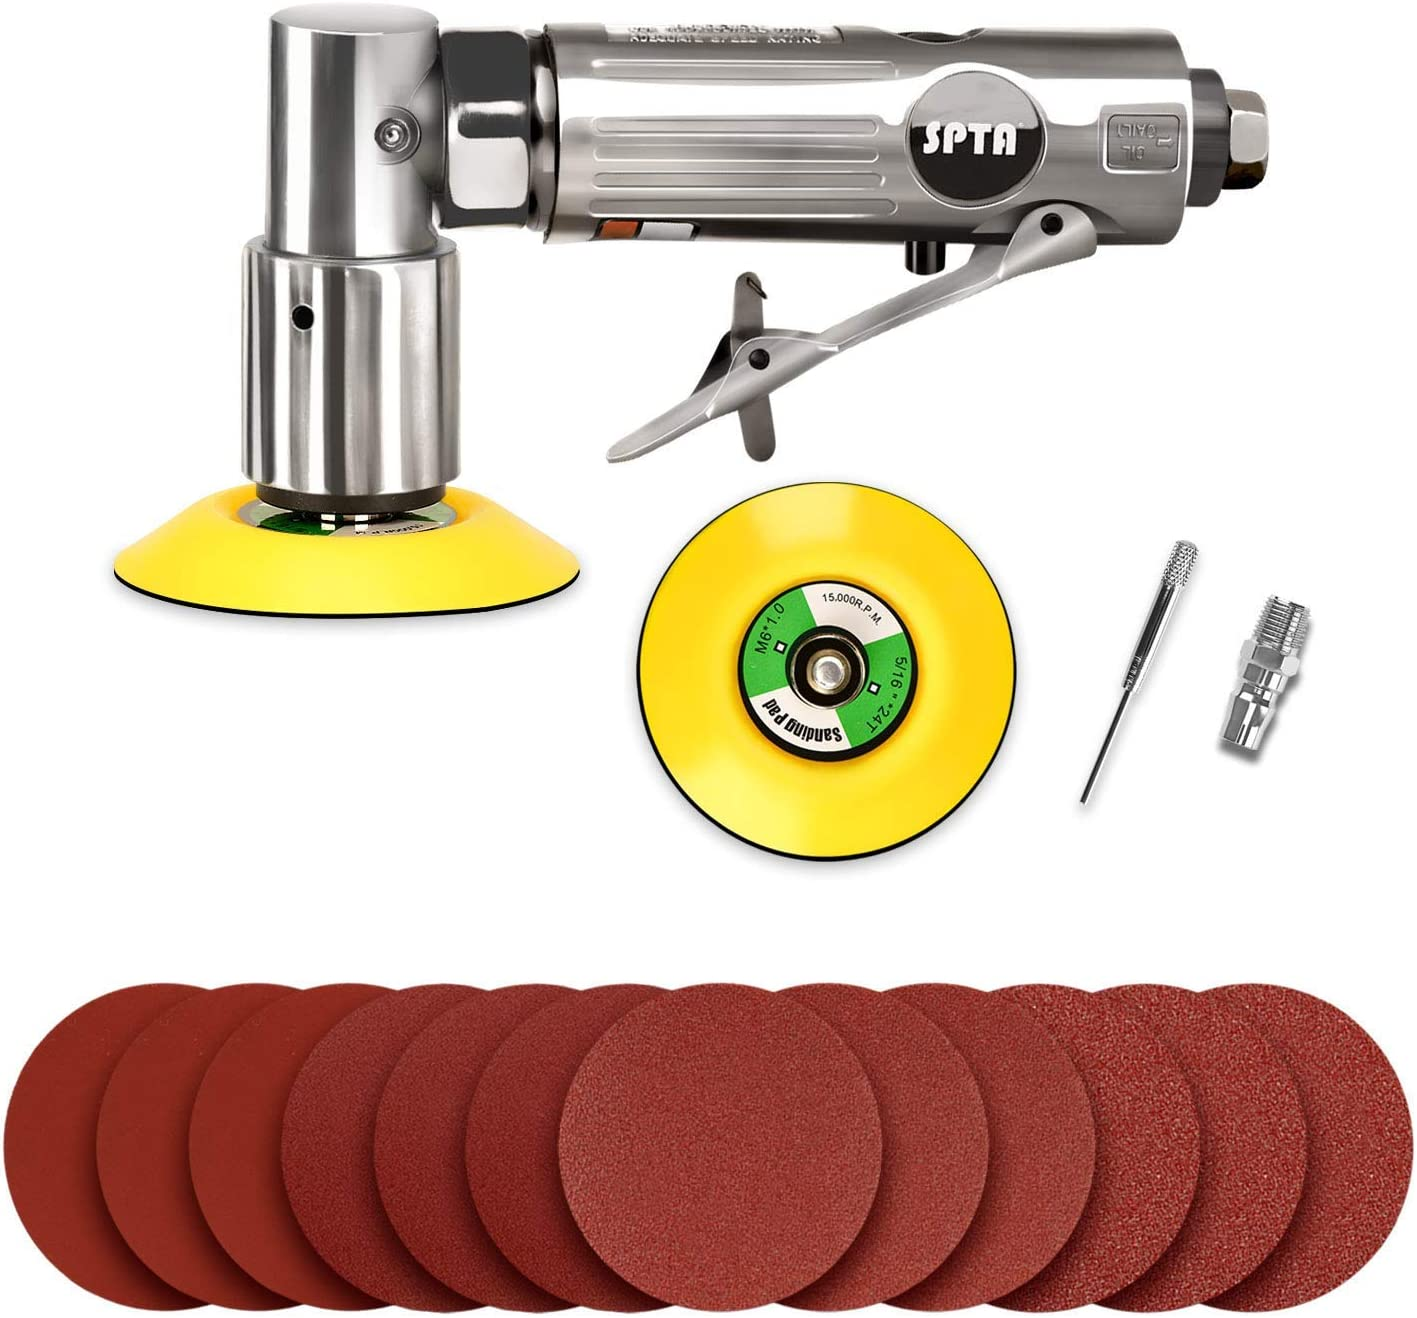 SPTA 3 80mm Mini Air Angle Sander Grinder Air Random Palm Sander Air Orbital Sander with M6 Backing Plate Car Polisher Sets with 12Pcs Mix Grit 80mm Sanding Disc Sanding Pads